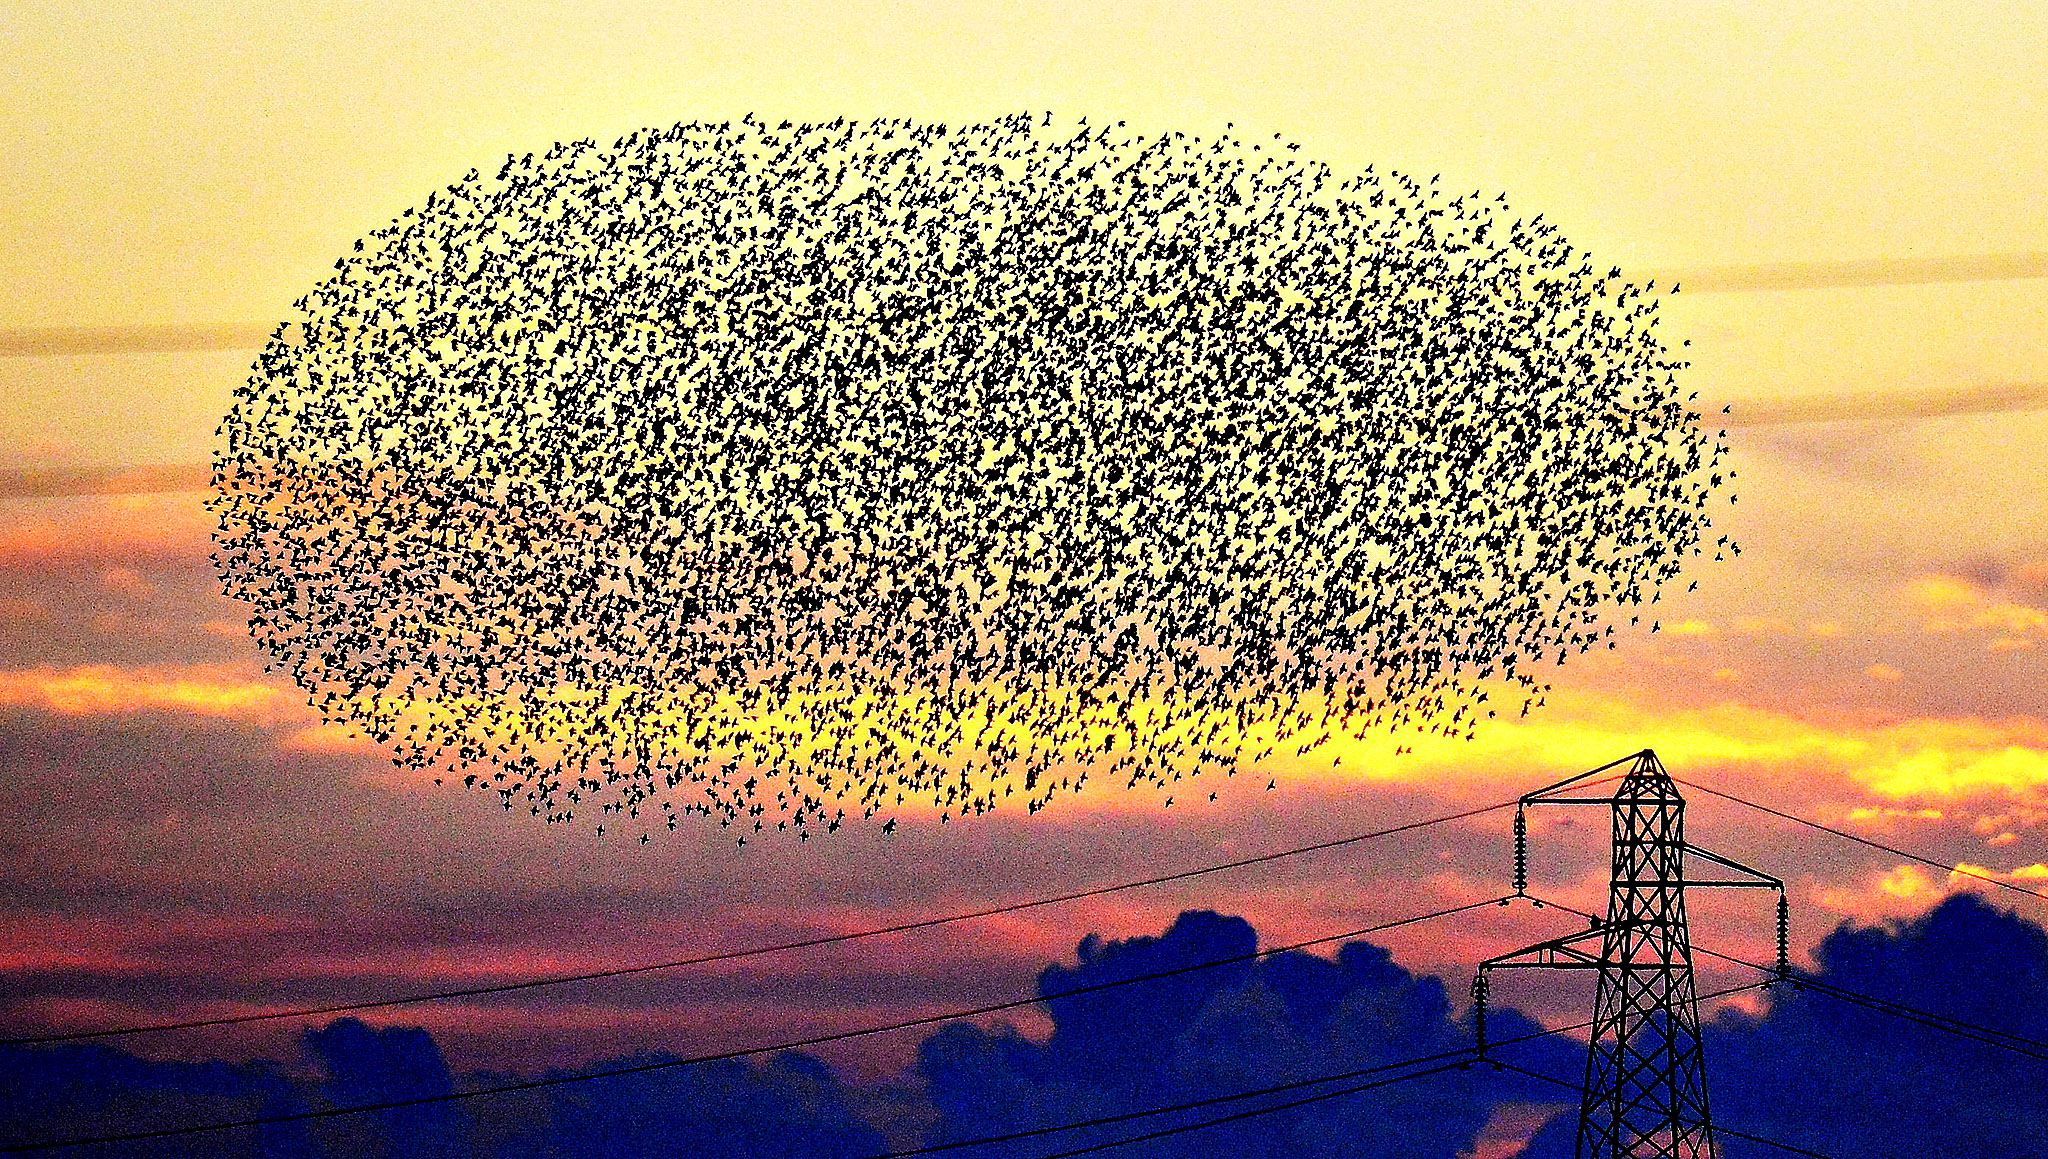 A murmuration of starlings fly close to power lines at sunset near Gretna on the Scottish borders.